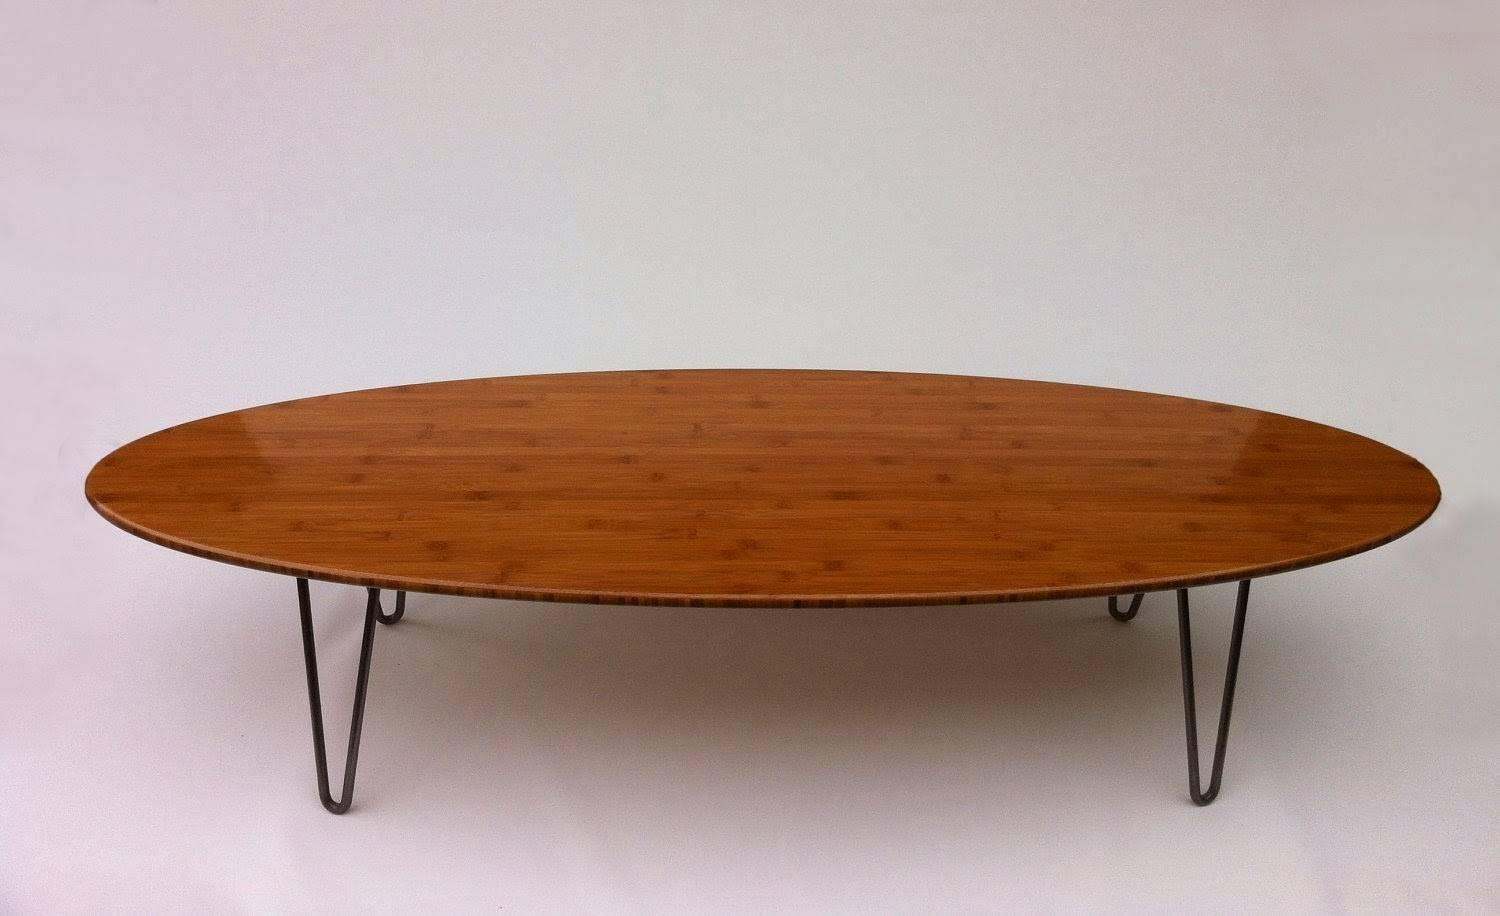 Furniture: Small Oval Coffee Table | Target Living Room Tables intended for Small Wood Coffee Tables (Image 20 of 30)